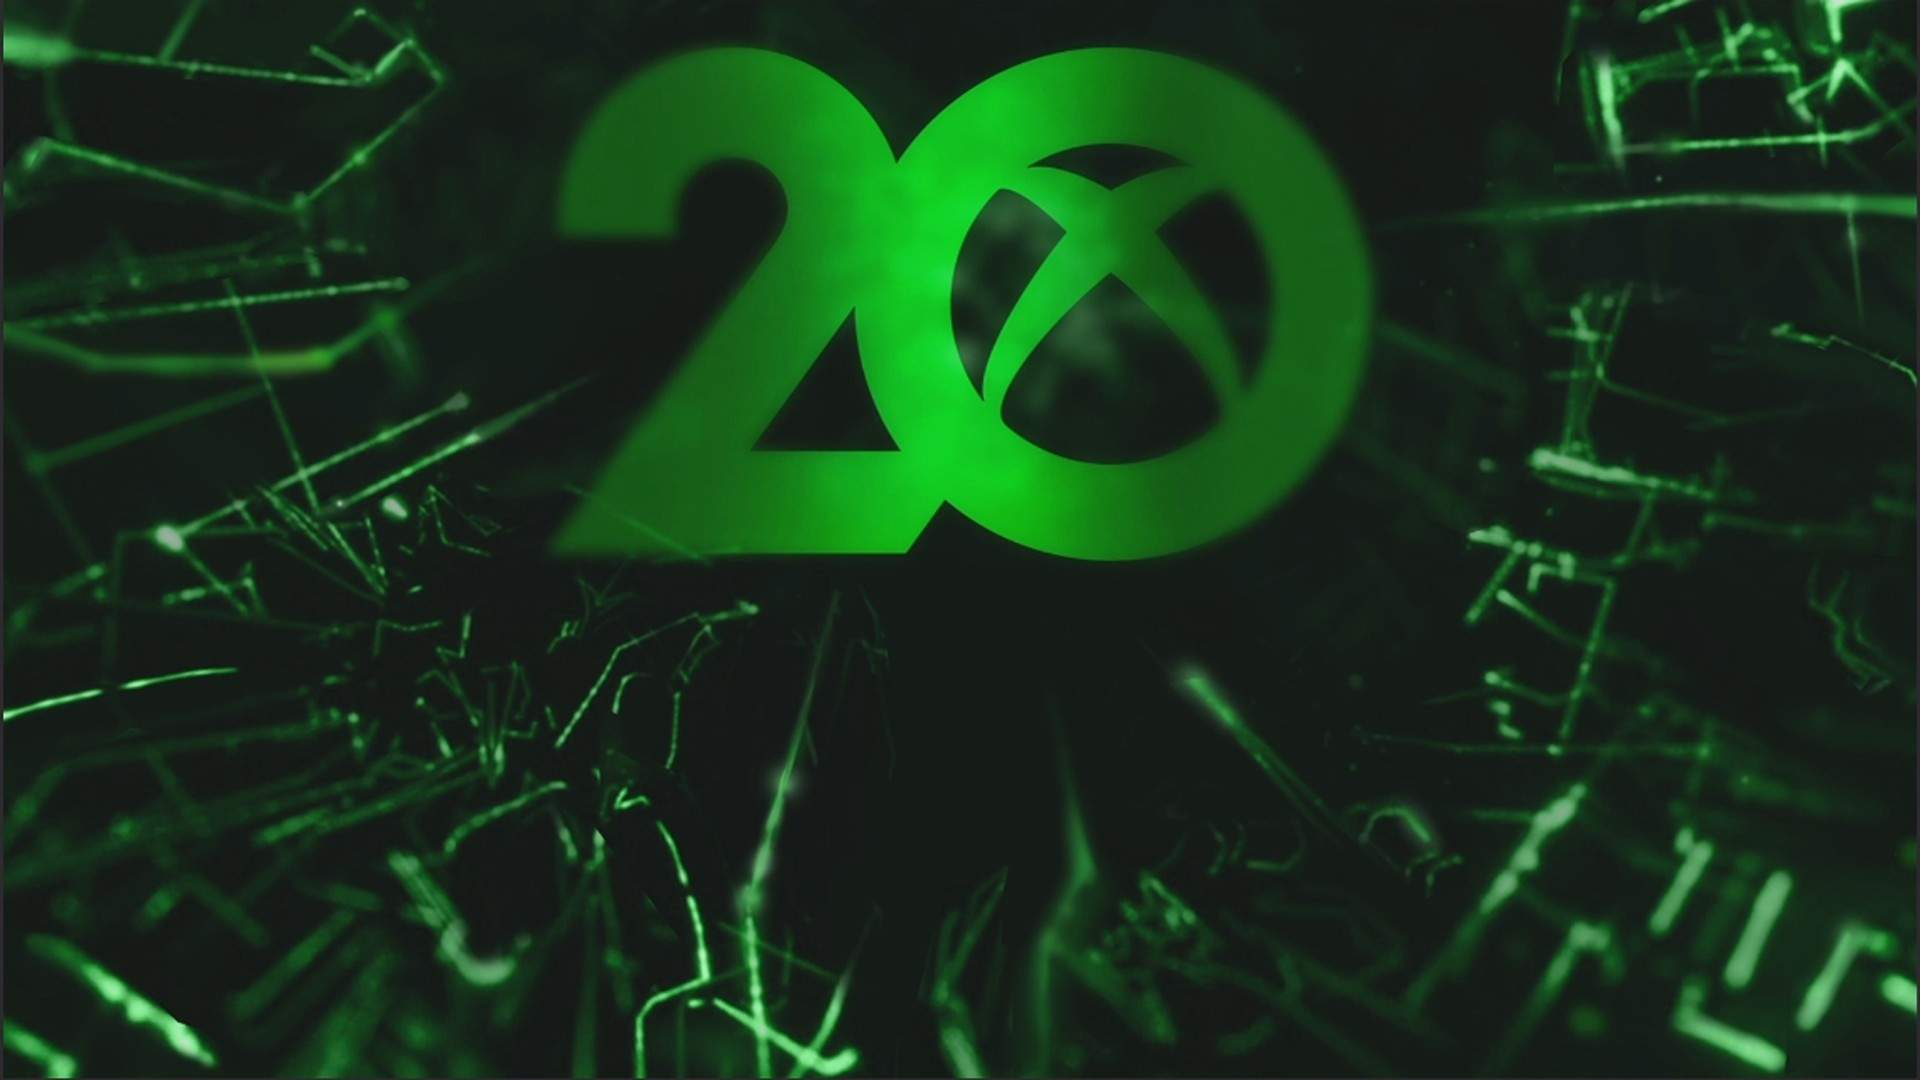 20th Anniversary dynamic background